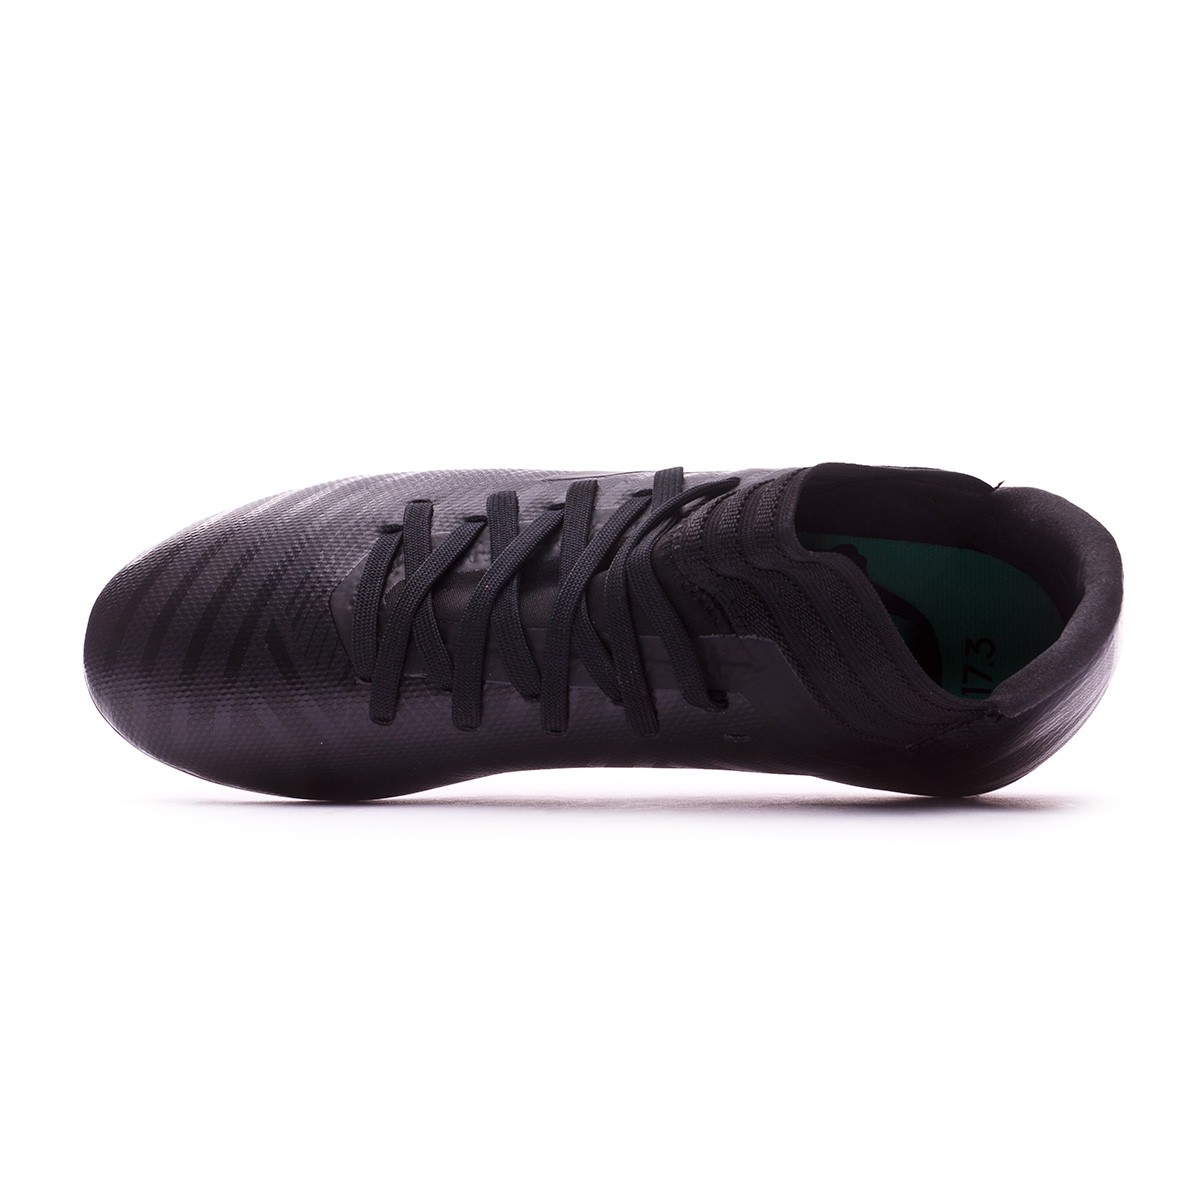 finest selection 355d1 25afa Boot adidas Kids Nemeziz 17.3 FG Core black-Hi-res green - Leaked soccer